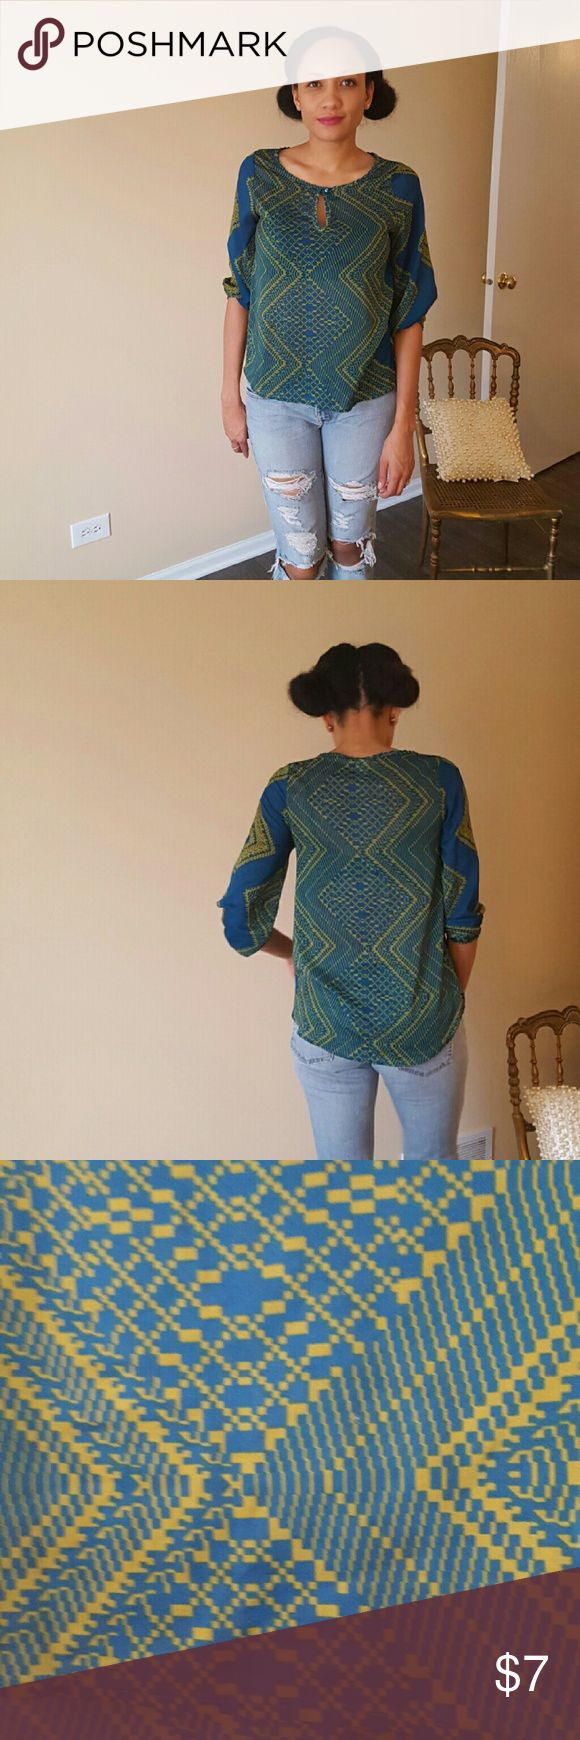 Groovy Blouse (Blue & Green) Groovy Baby! Blouse is blue and green with a keyhole in the front. Fits loose with an elastic band at the arms to give added flare & form. Tops Blouses